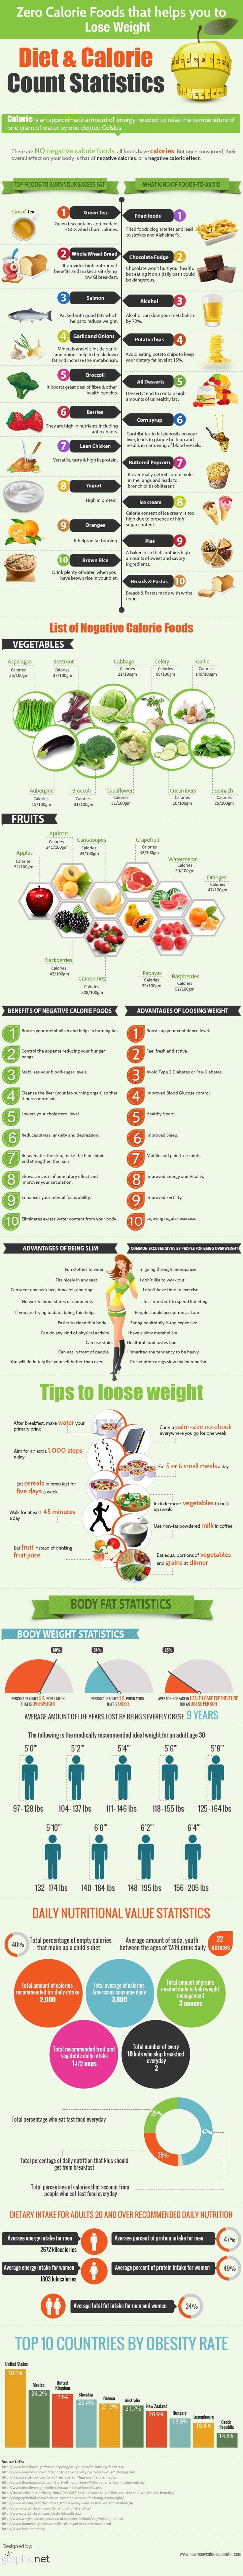 """HEALTHY FOOD - """"Diet and Calorie"""" - """"Lose Weight With These #ZeroCalorie Foods   #Infographic""""."""